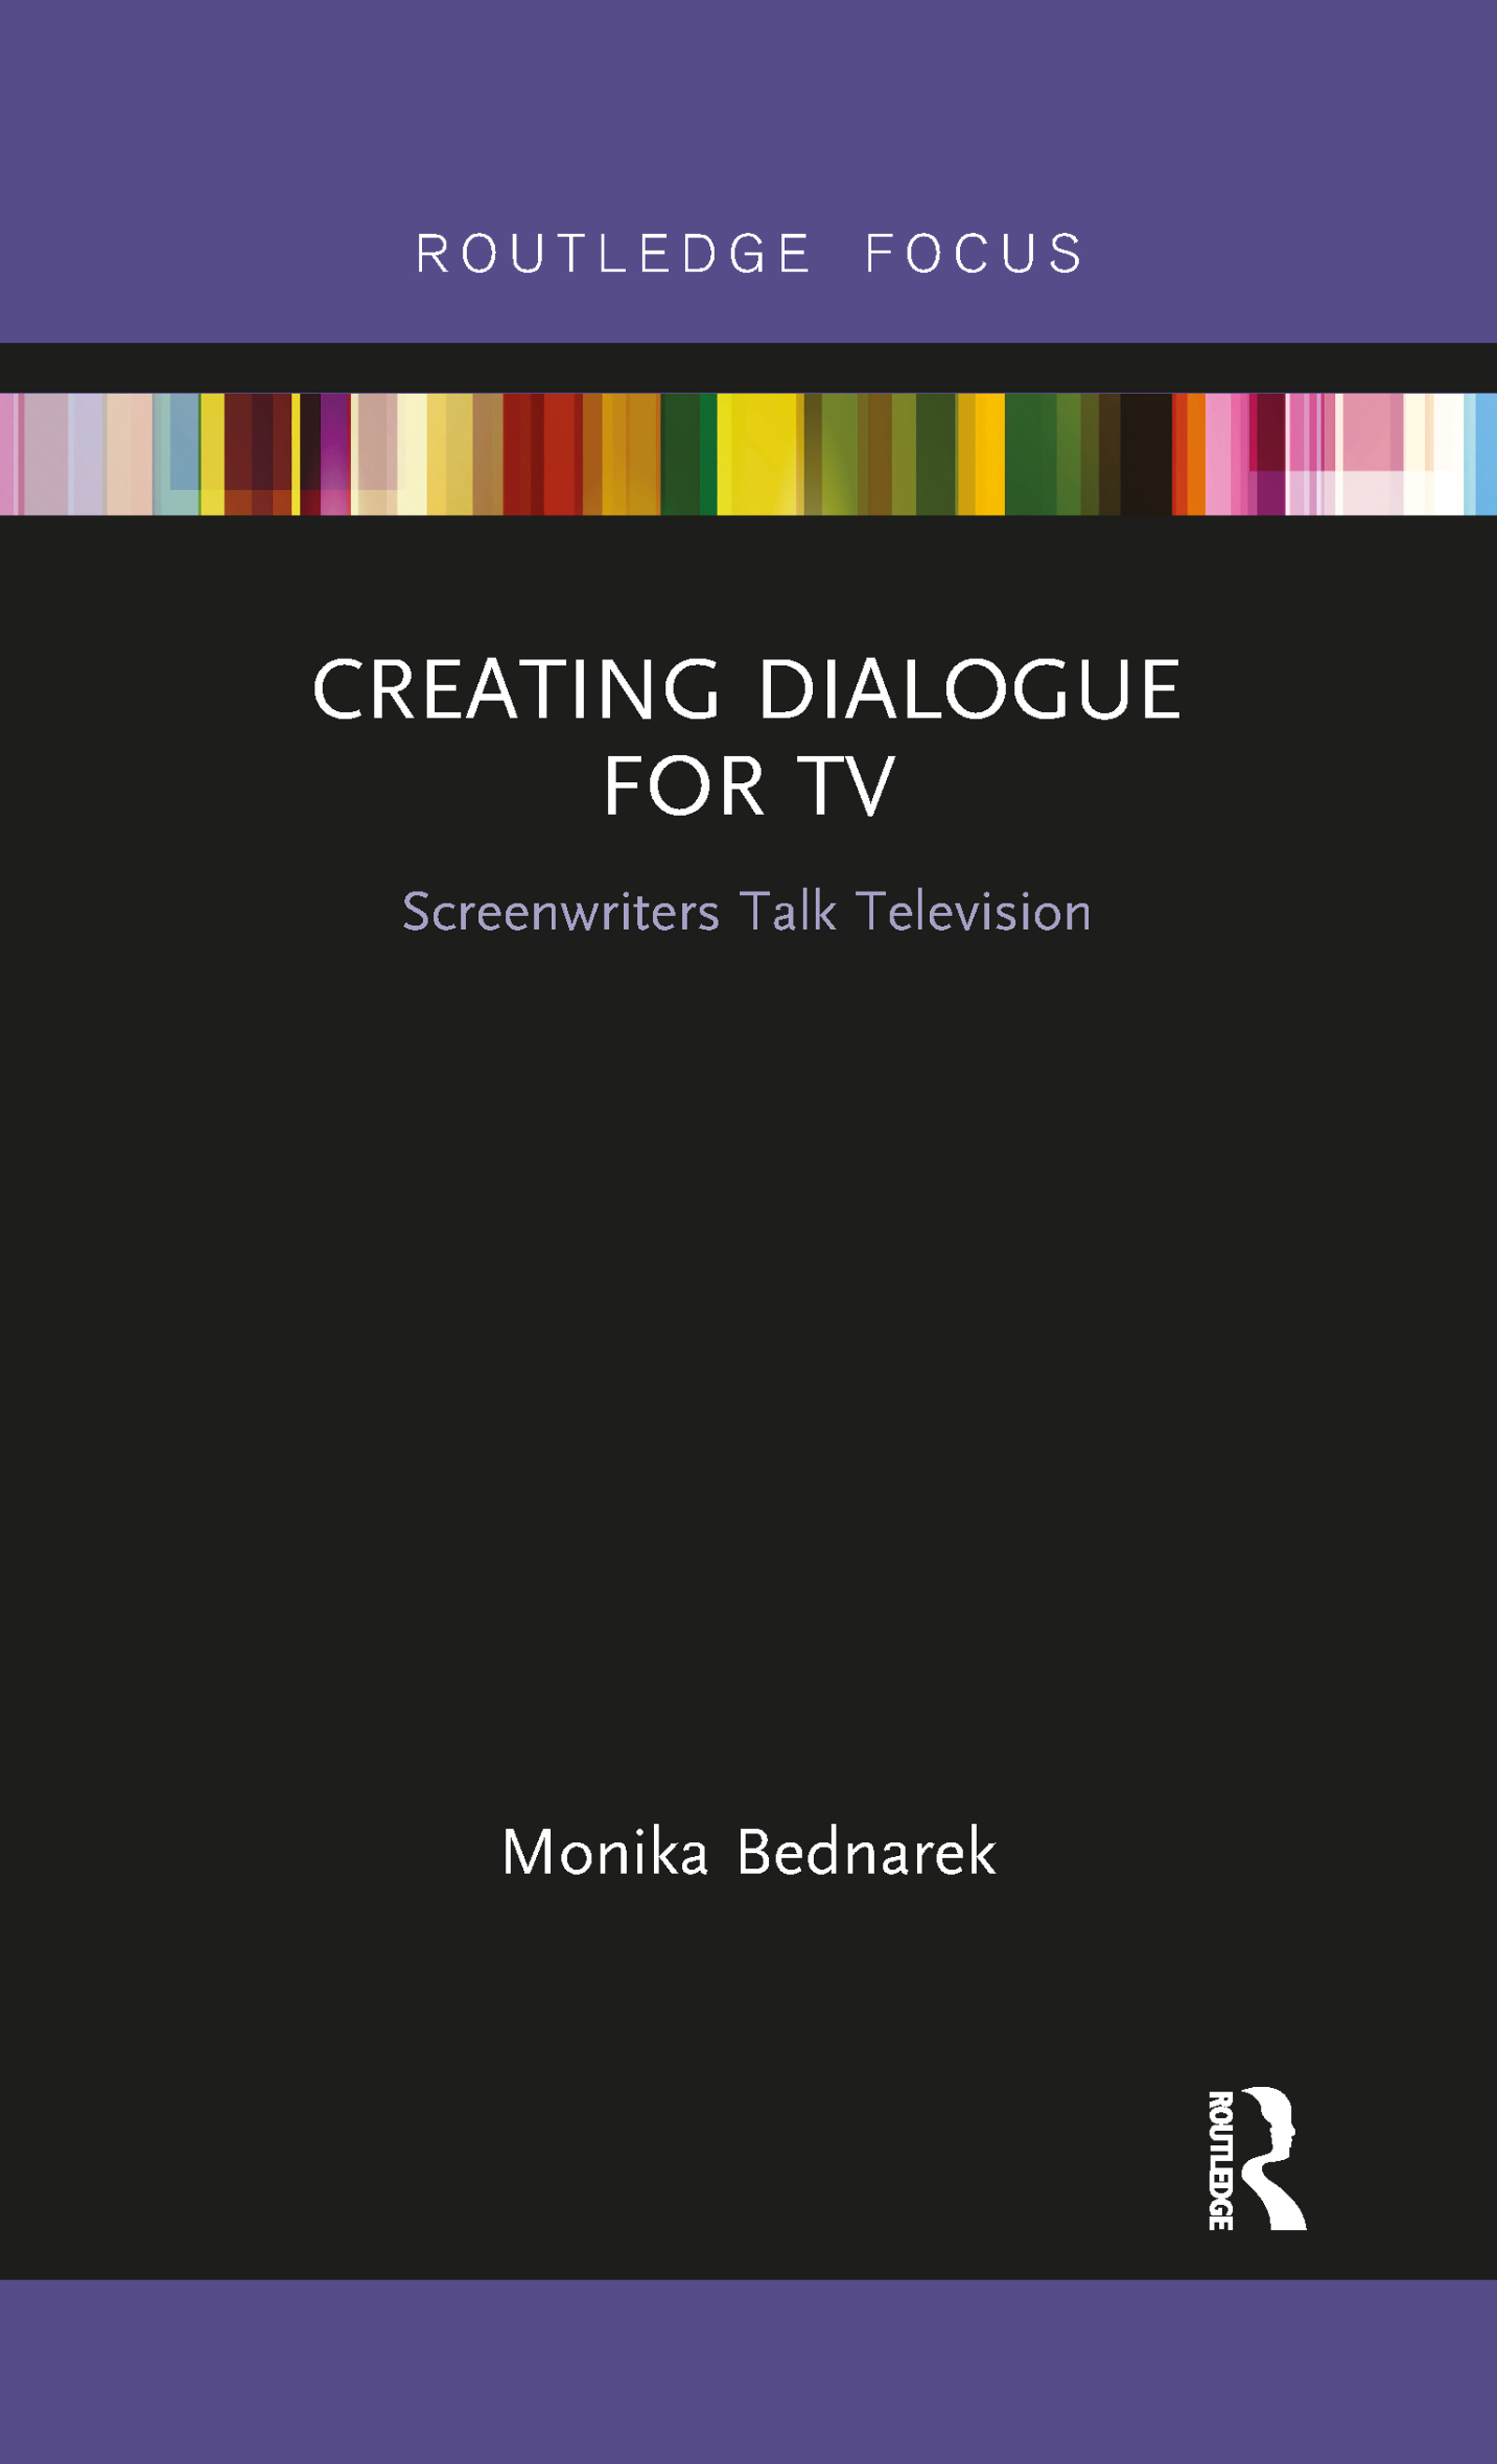 Creating Dialogue for TV